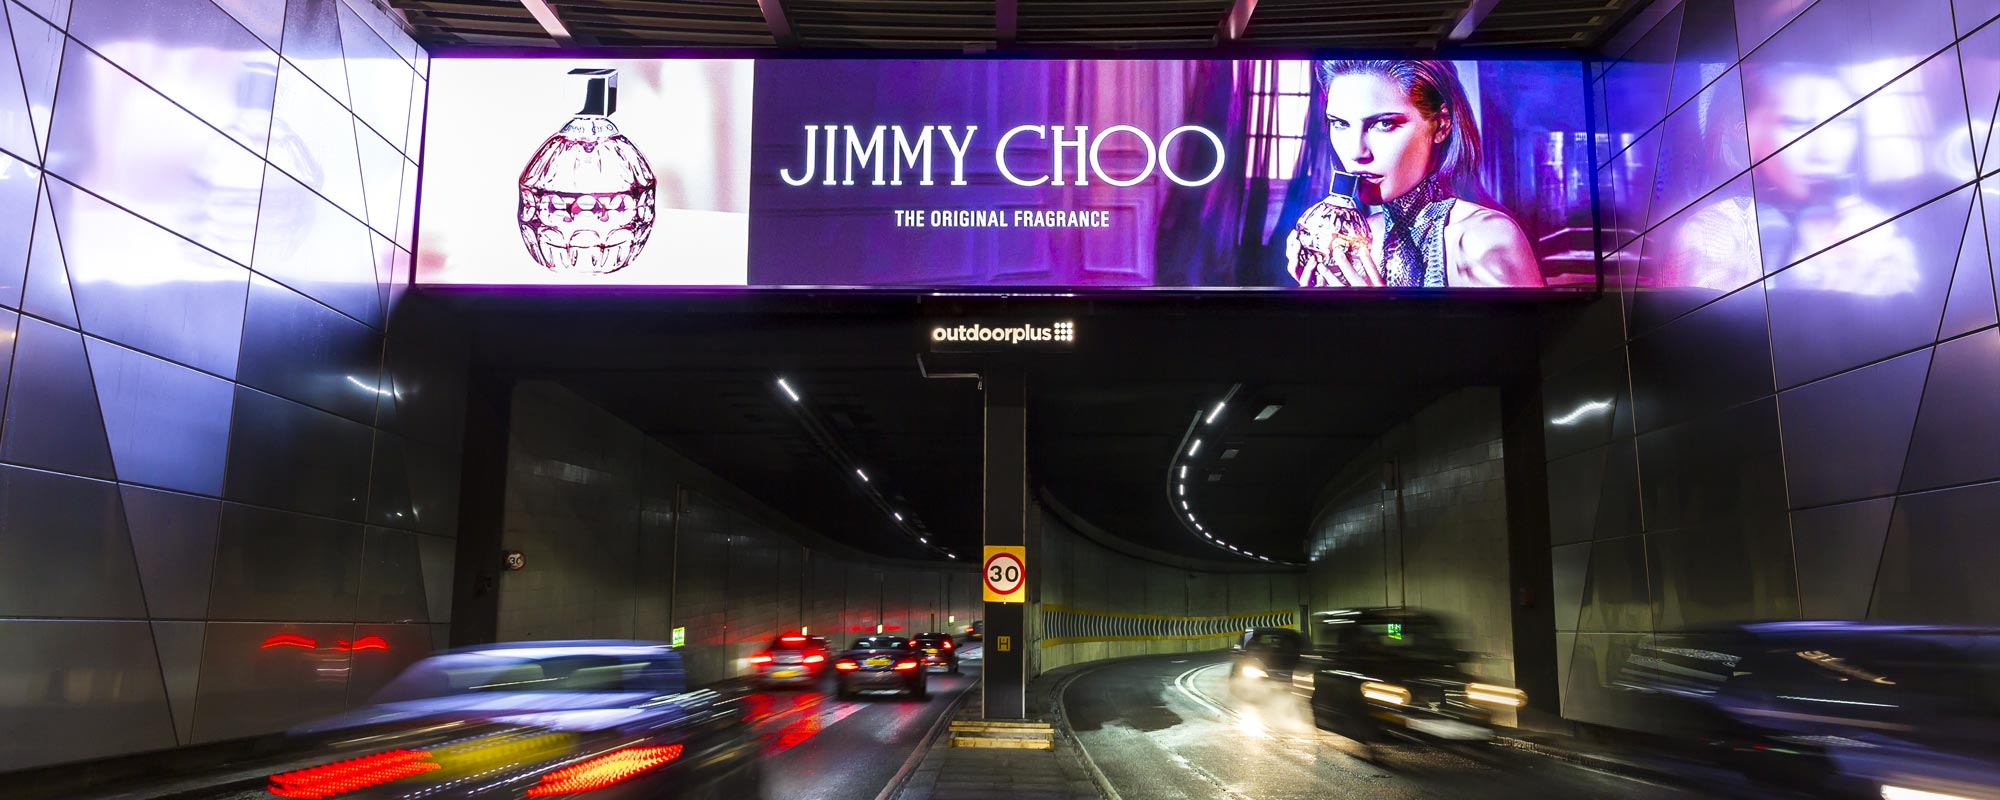 Outdoor Plus Illuminates the Journey from Fortnums to Harrods